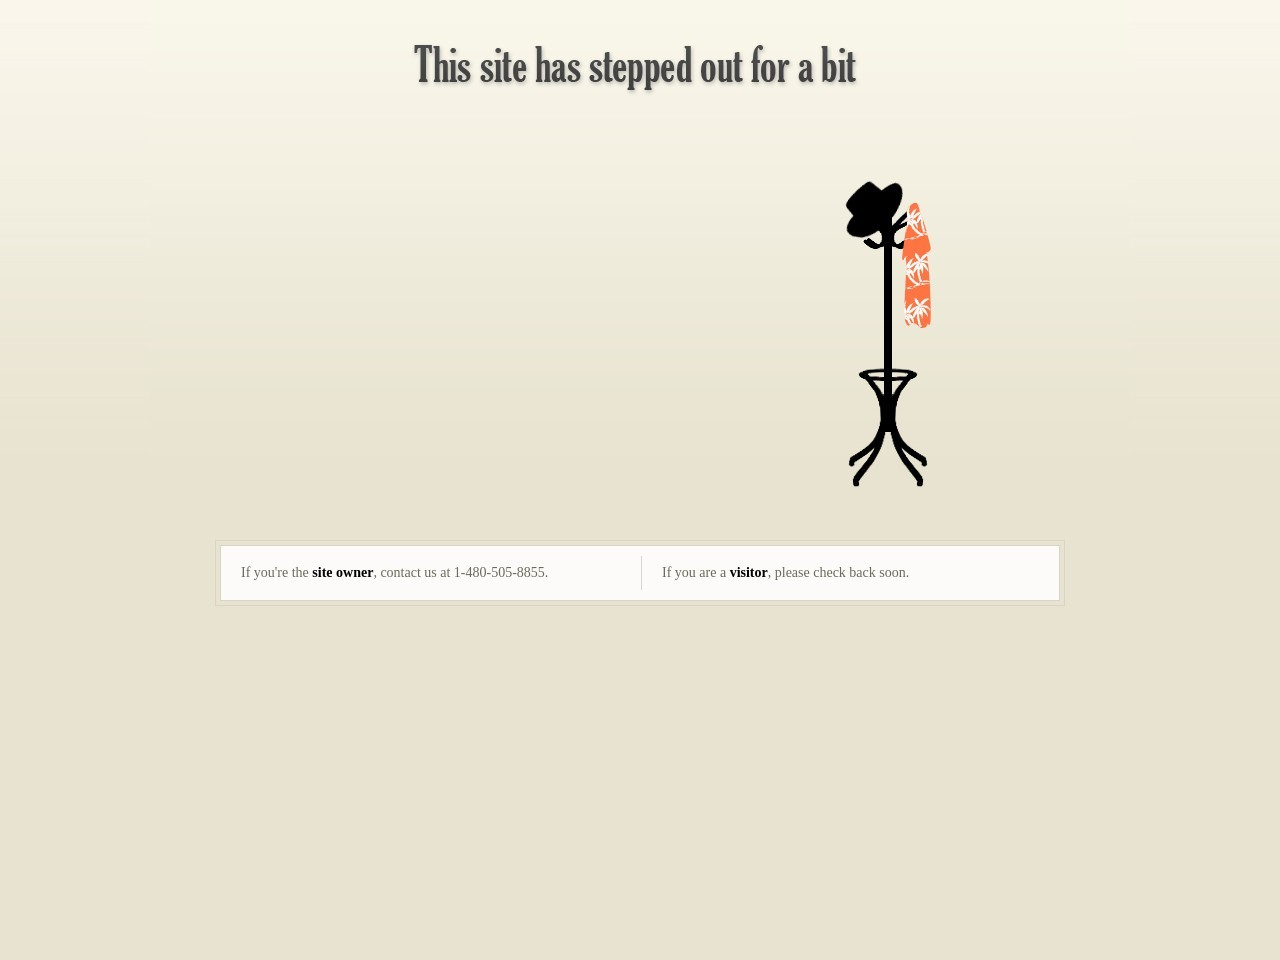 IMBA Updates e-MTB Position – E-bikes on singletrack